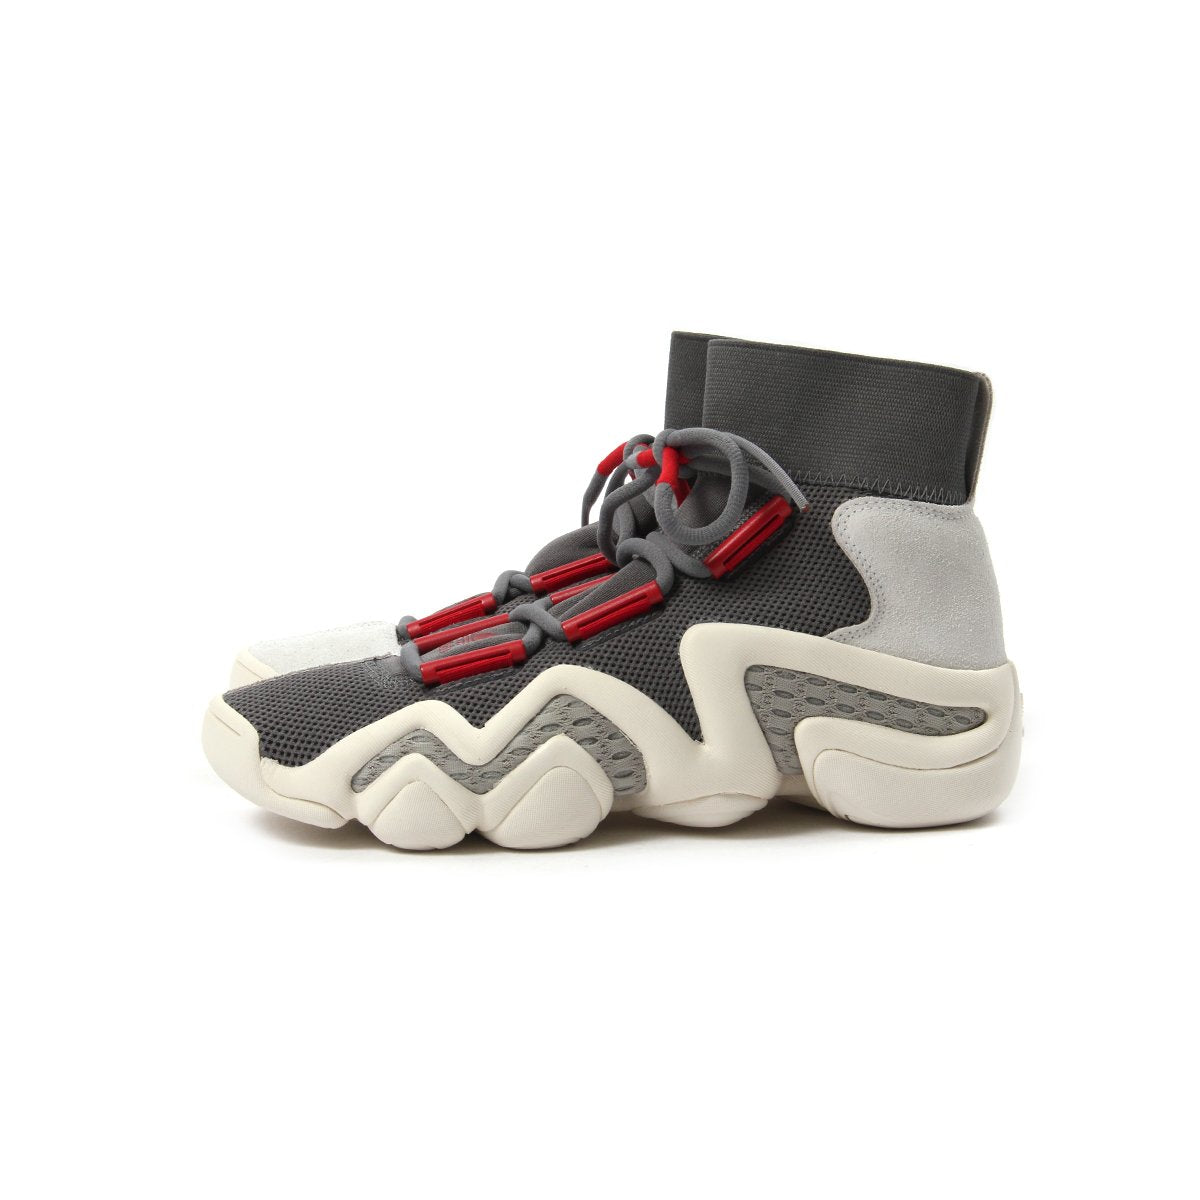 new product d5305 c2049 ConceptsIntl  adidas Crazy 8 AD (GreyRed-Sesame)